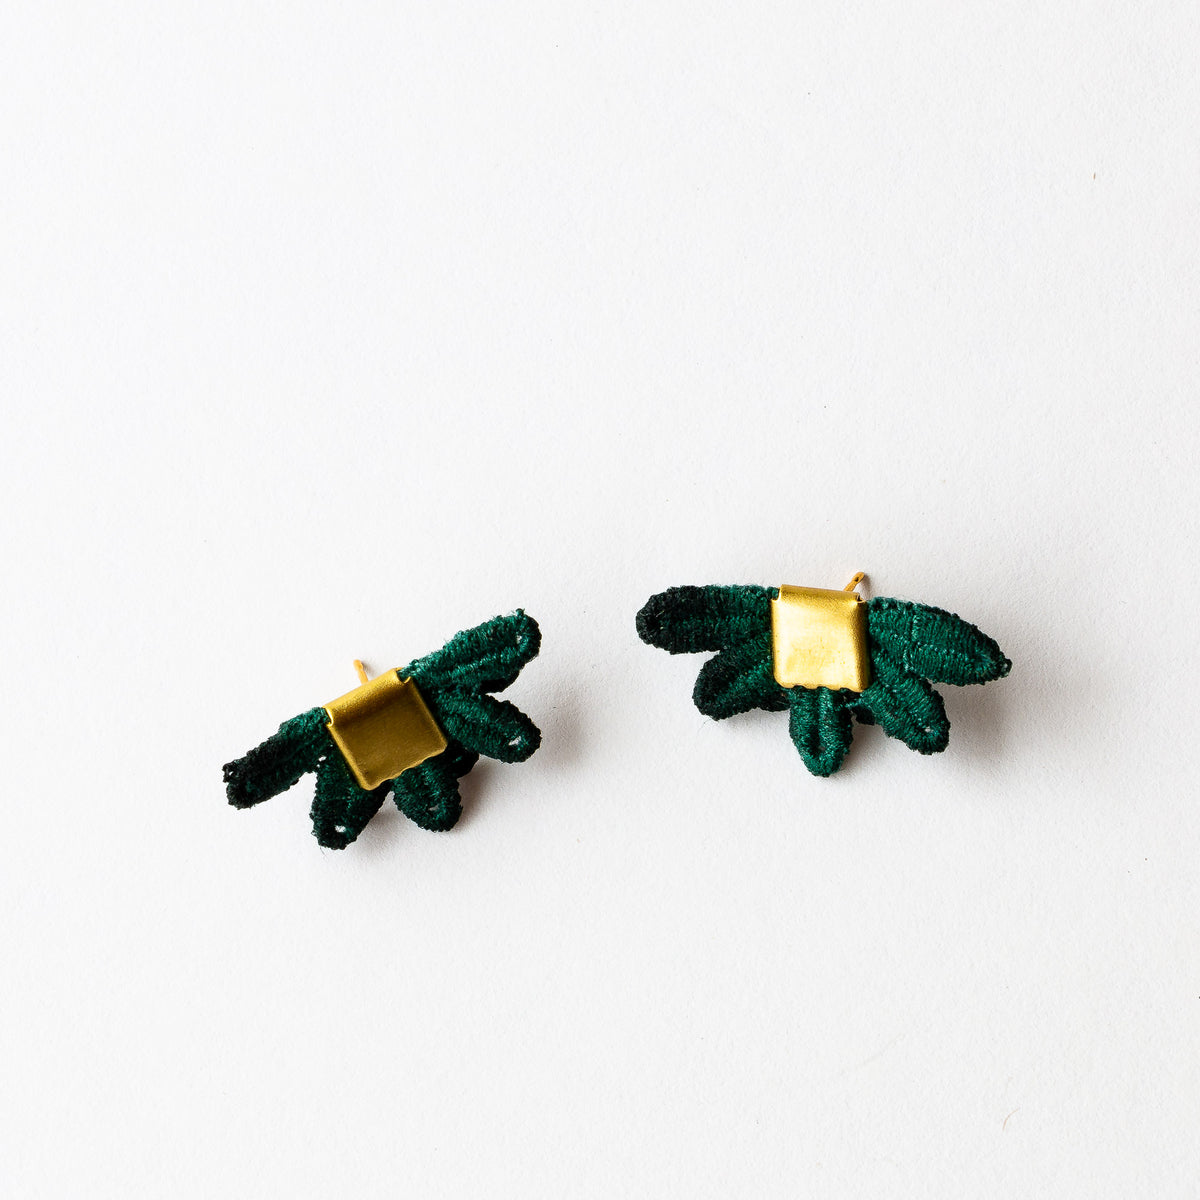 Evergreen Lace -  Larrea - Hand Dyed Lace & Brass Stud Earrings - Sold by CHic & Basta